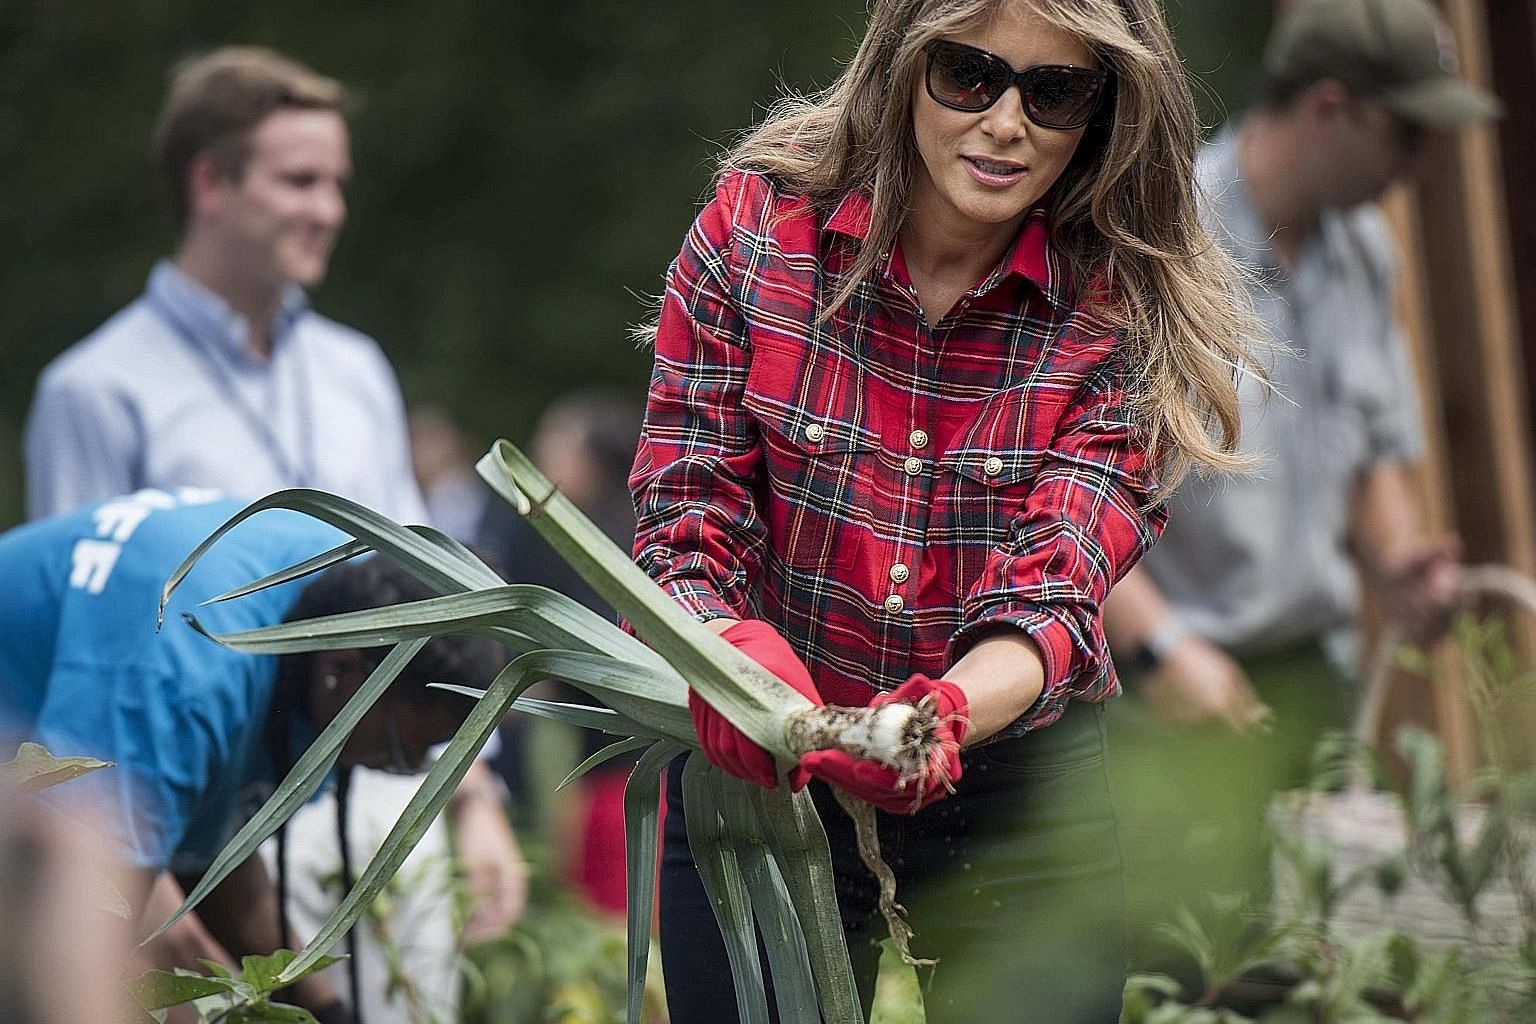 Mrs Melania Trump harvested and planted fresh produce alongside a dozen children last Friday at the White House Kitchen Garden, established in 2009 by Mrs Michelle Obama as part of her work fighting childhood obesity.